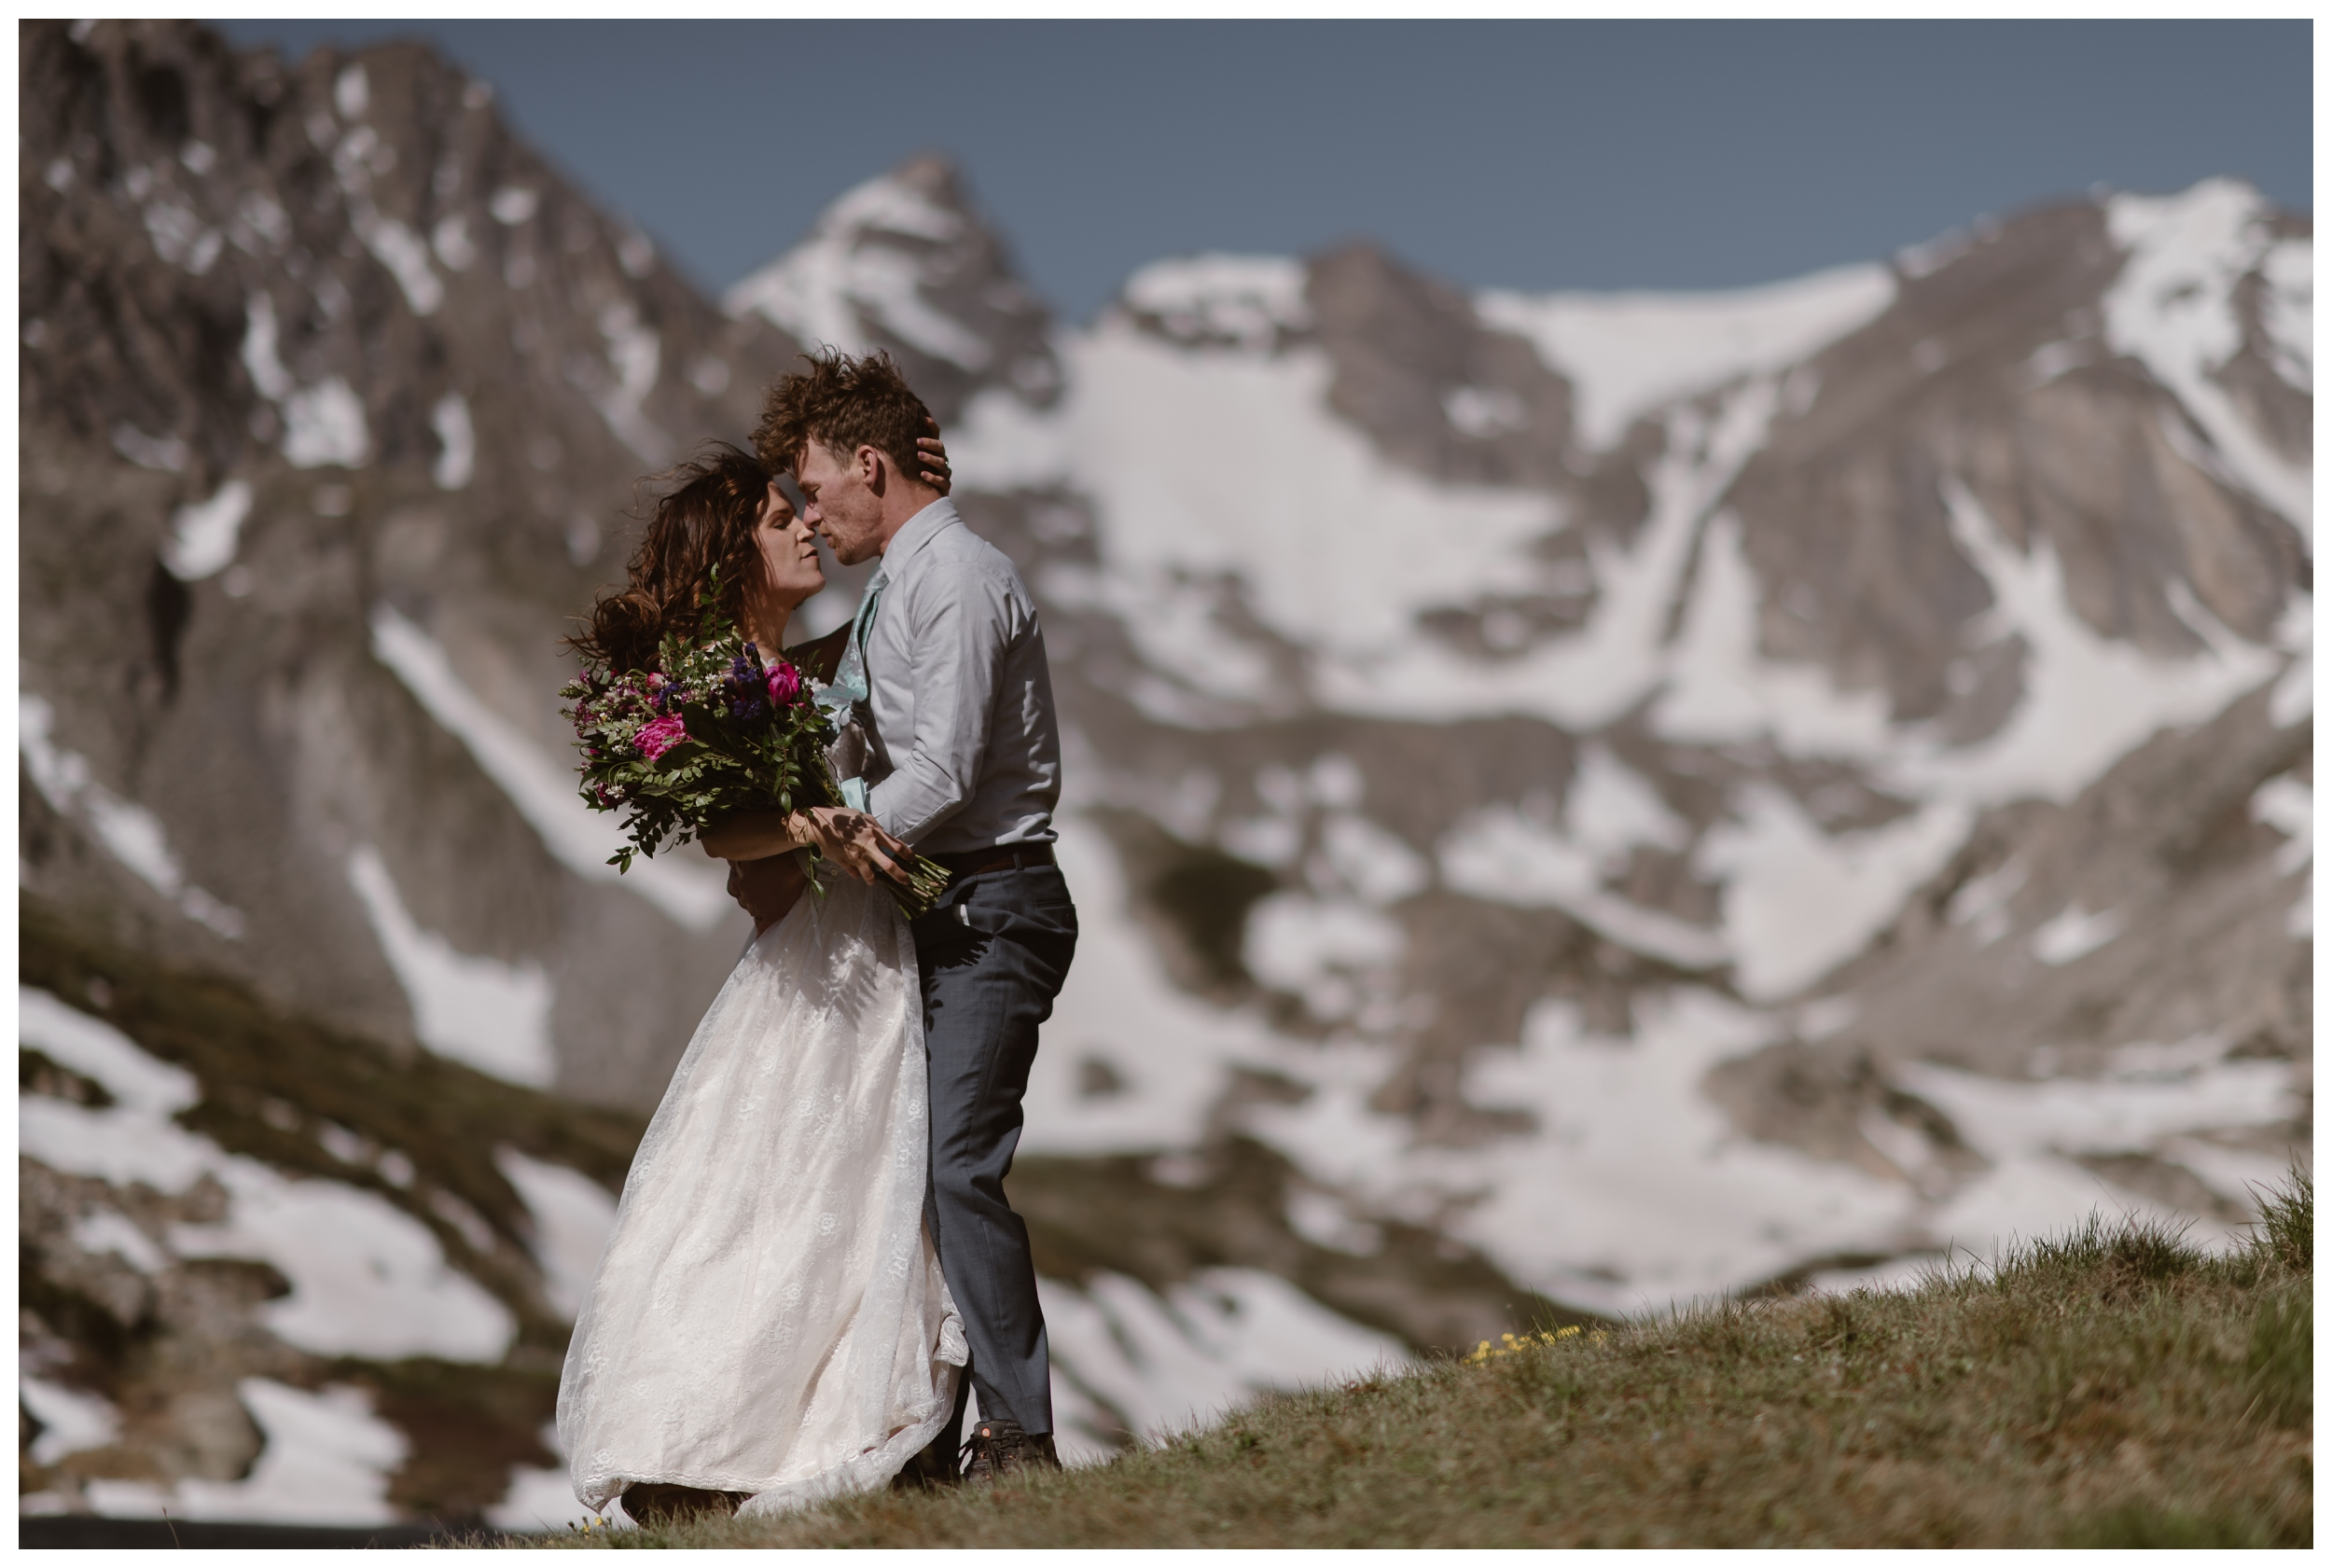 The snowy mountains of early spring and summer in the Colorado Rocky Mountains are behind Karen and Matt as they embrace following their high alpine lake elopement ceremony. Photo by Adventure Instead, Maddie Mae.